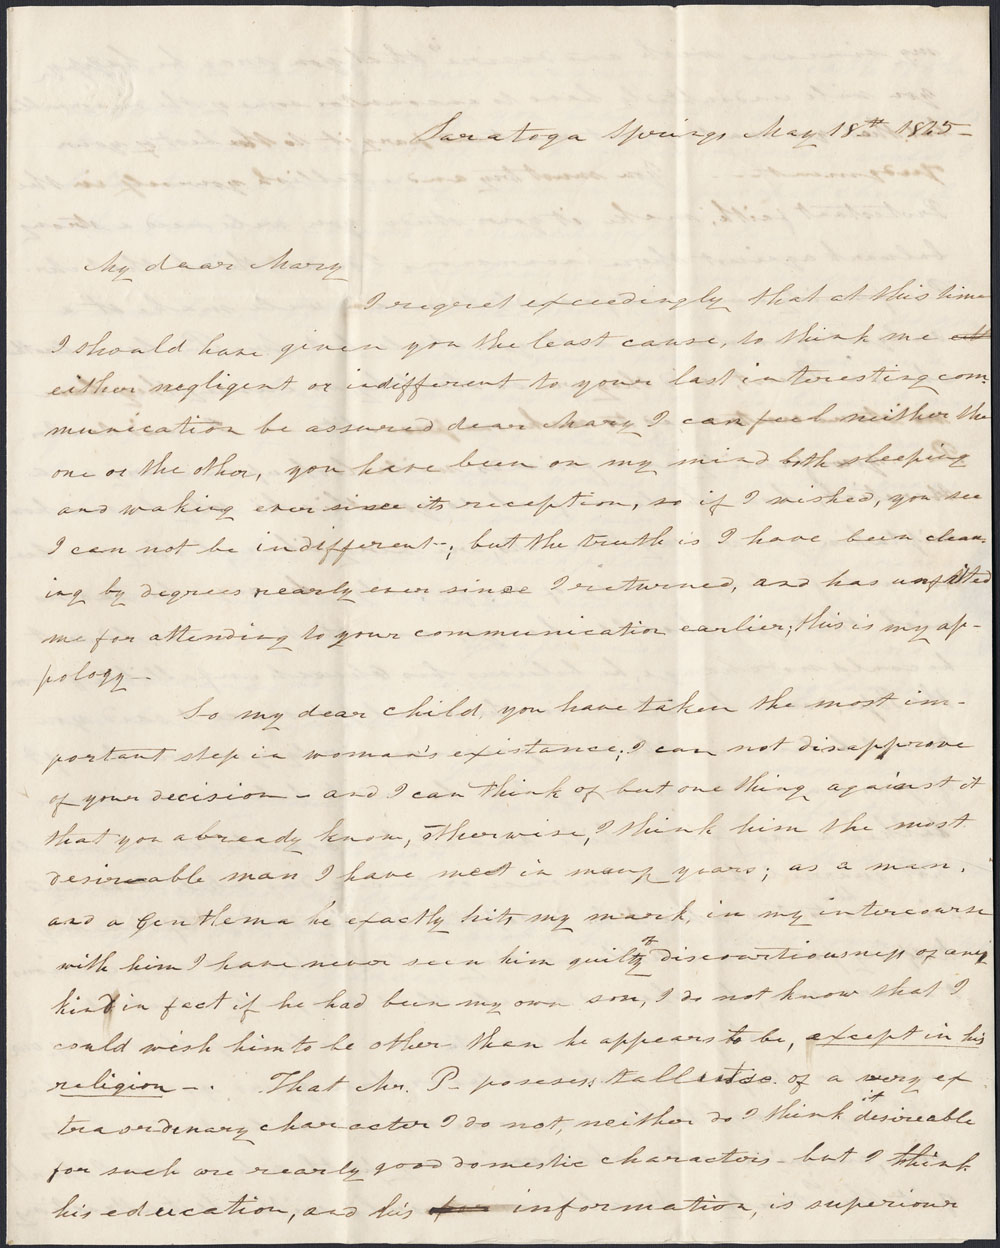 [Correspondence of Mary Westcott] 1845. (item 5)